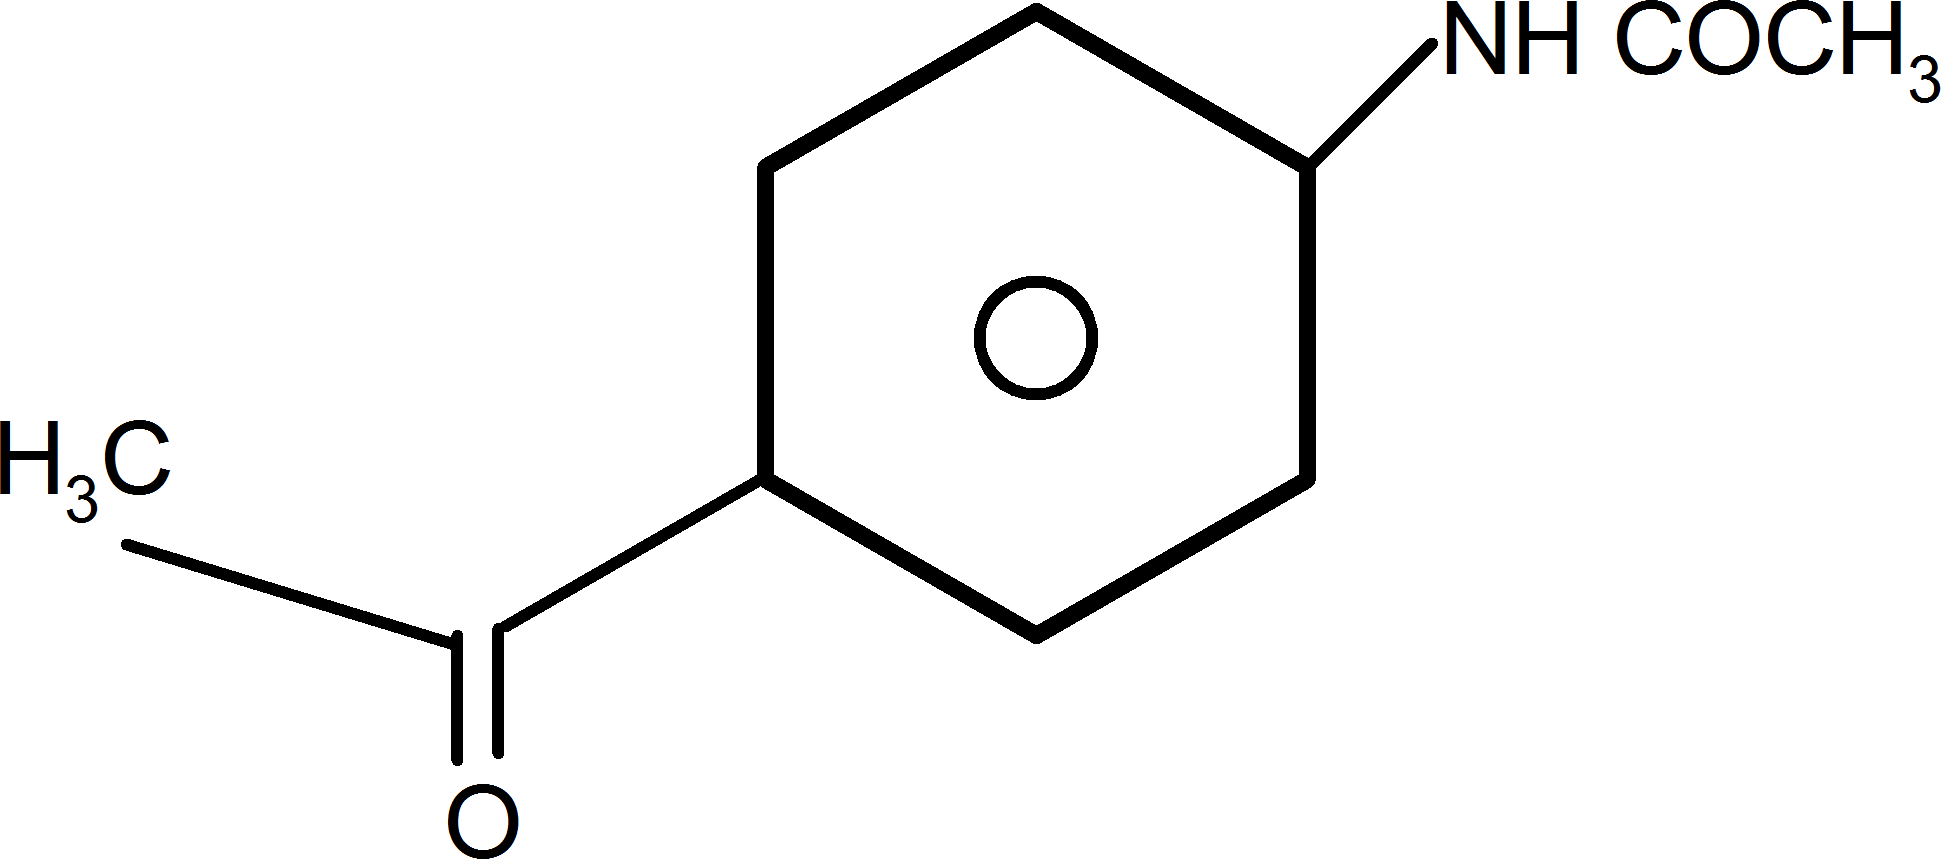 Product obtained in reaction of aniline: Choice B